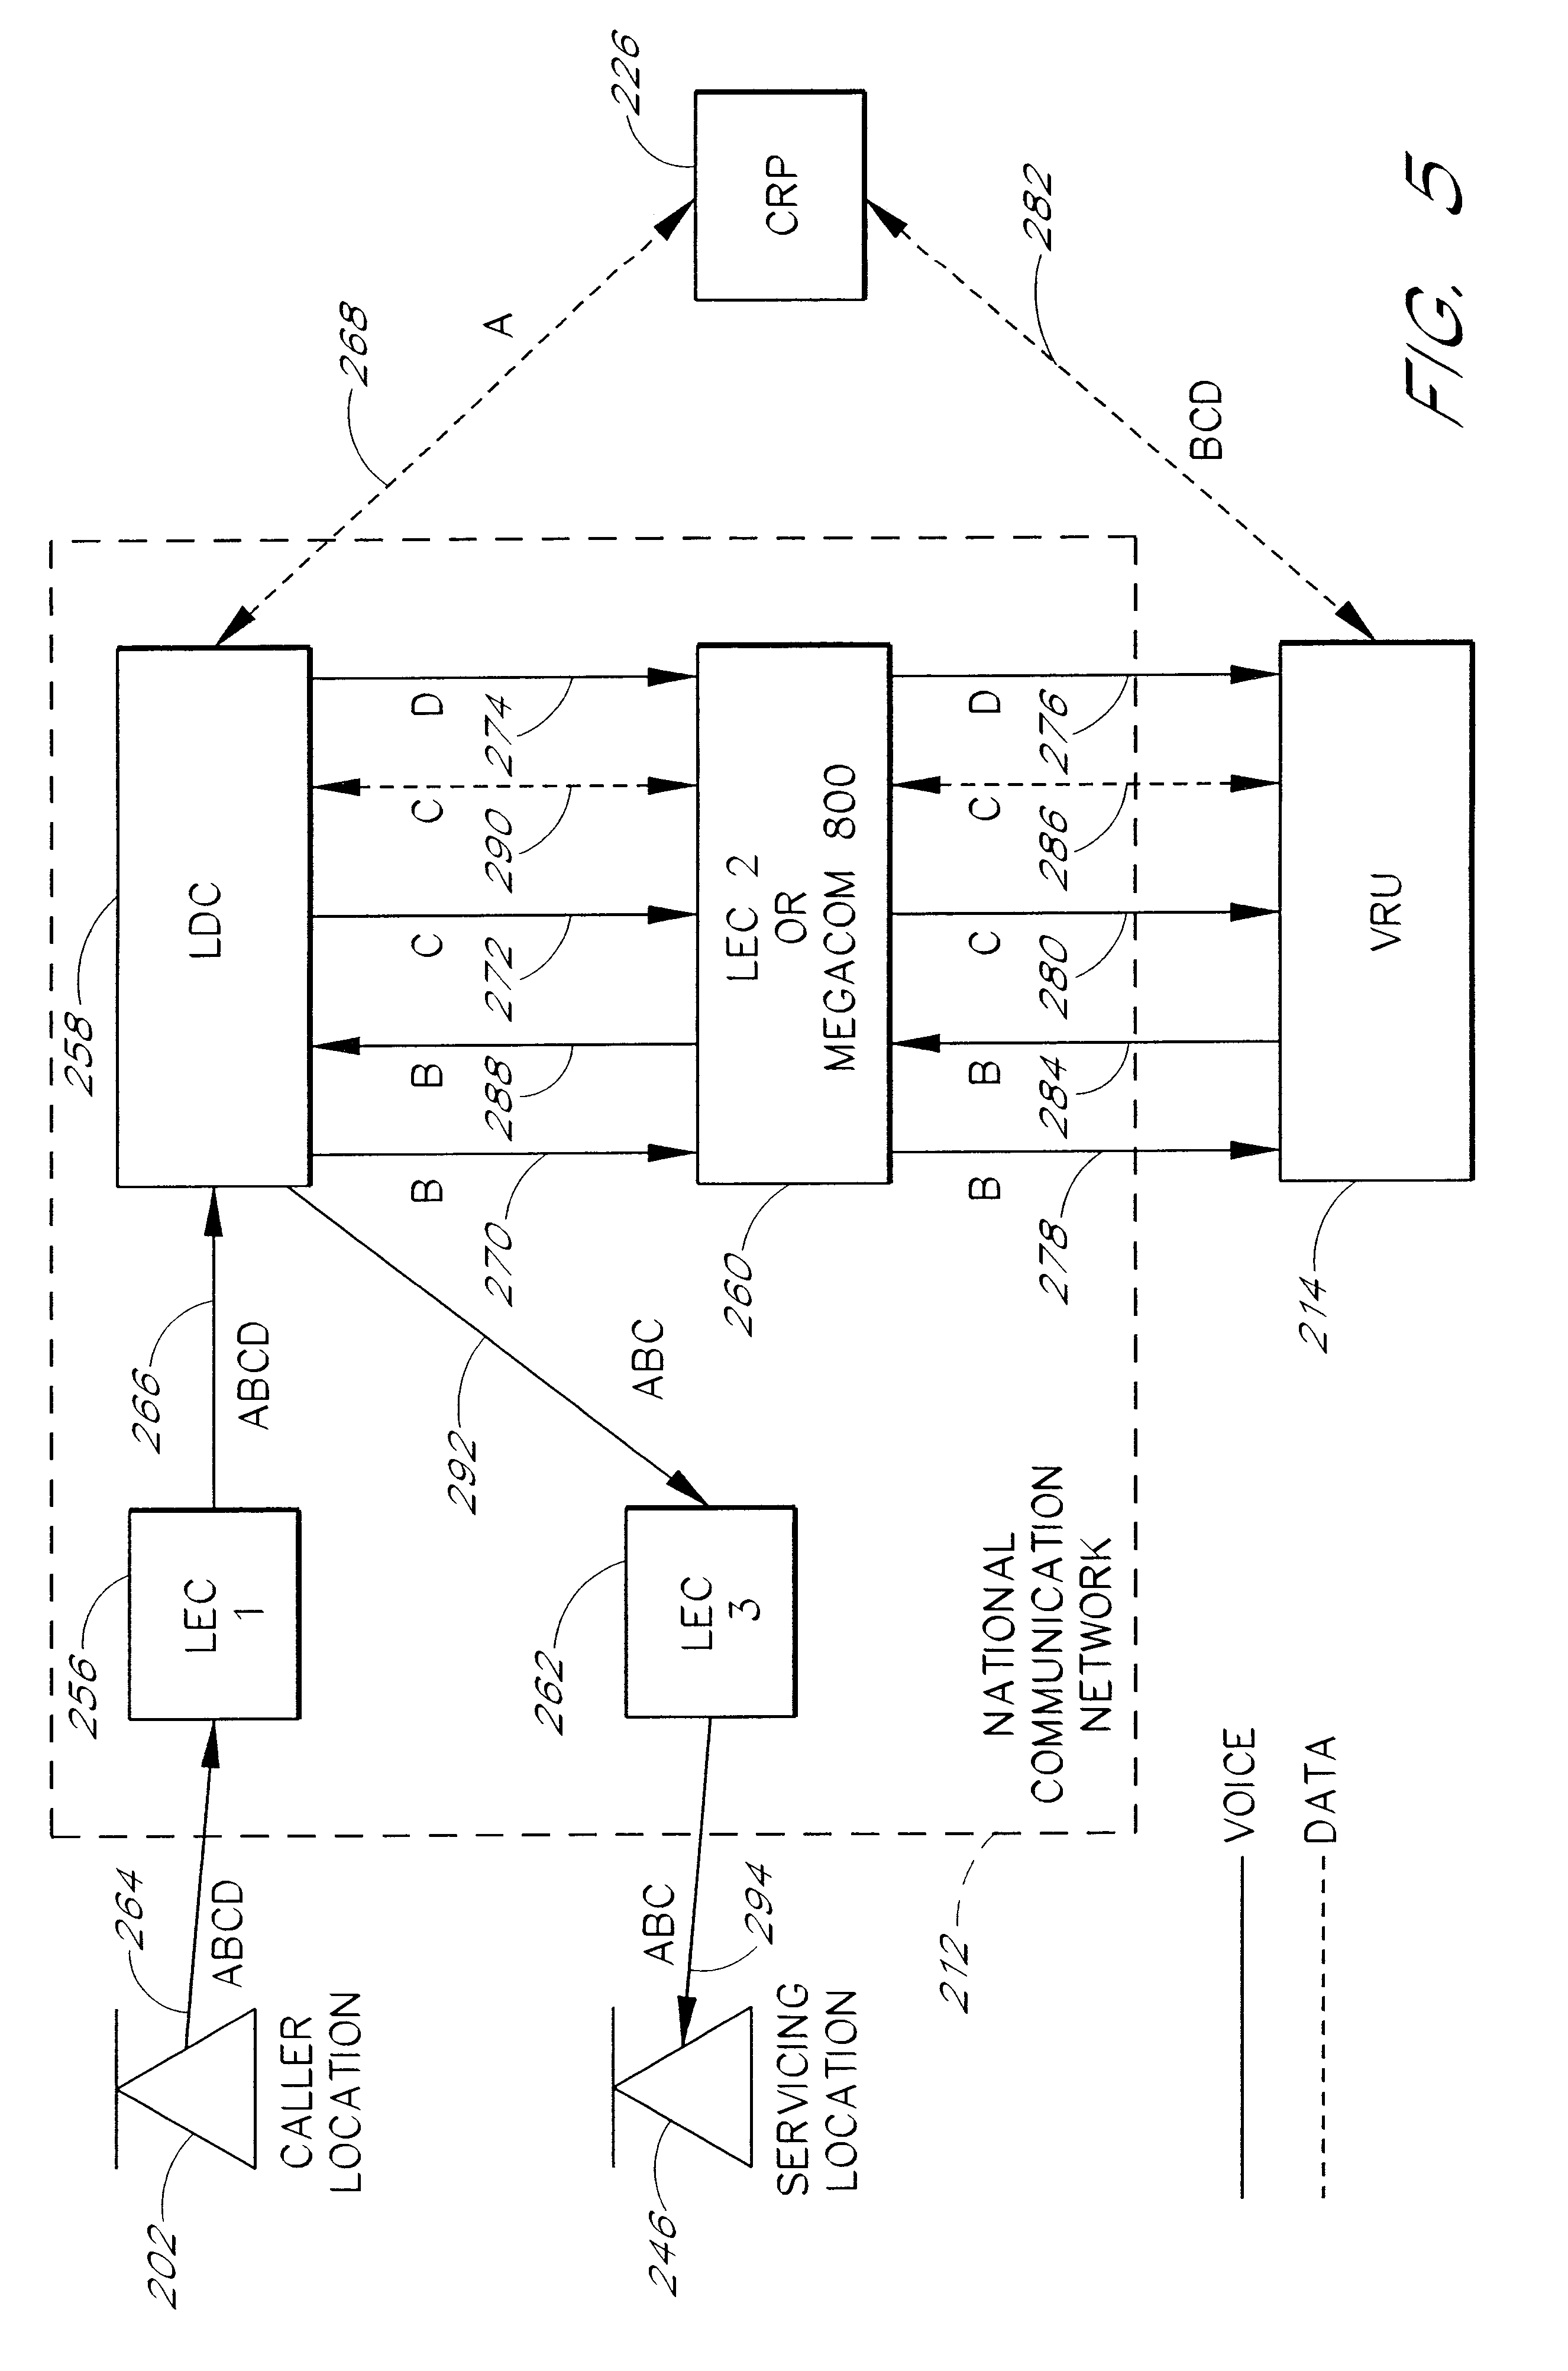 Patent Us 6185290 B1 Voice And Data Network Diagram Printable Wiring Schematic